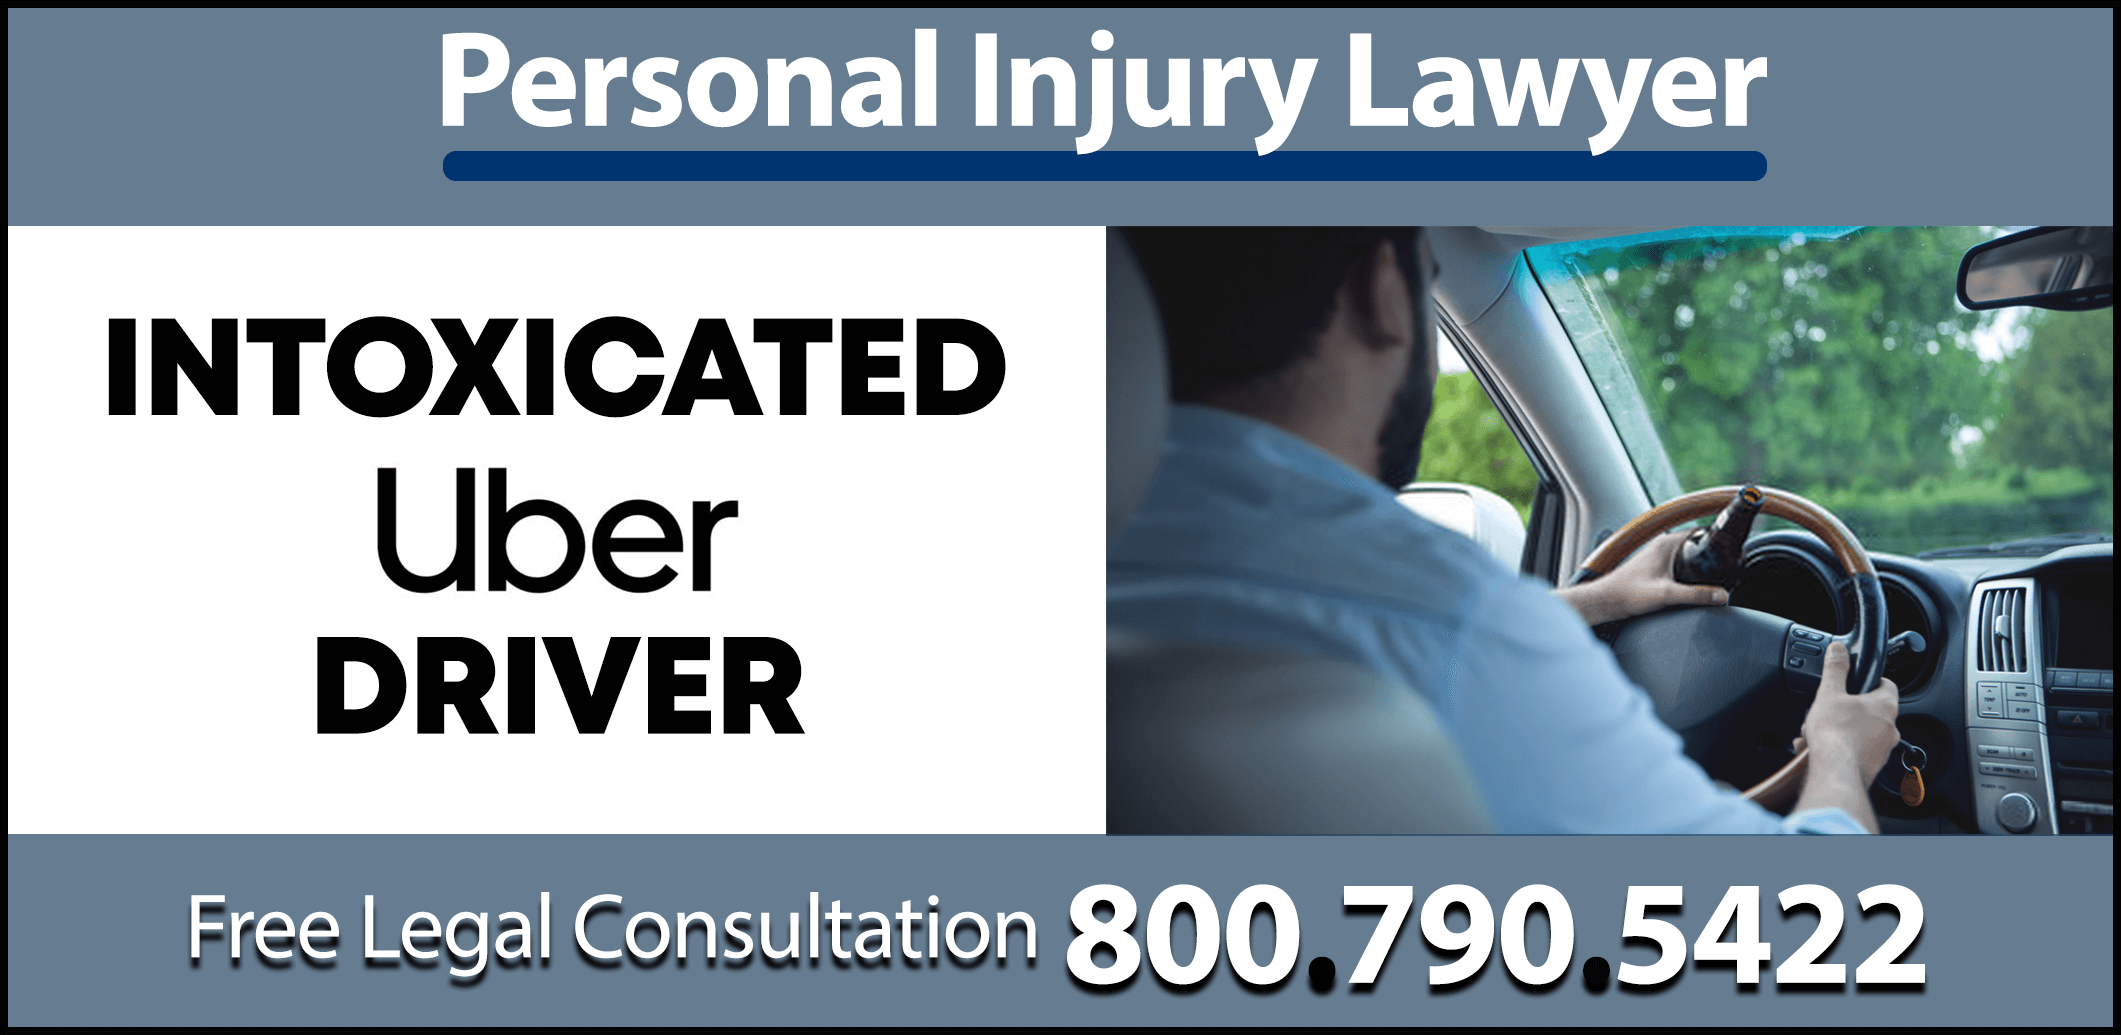 intoxicated uber driver drunk danger safety insurace liable liability compensation concussion sprain fracture sue